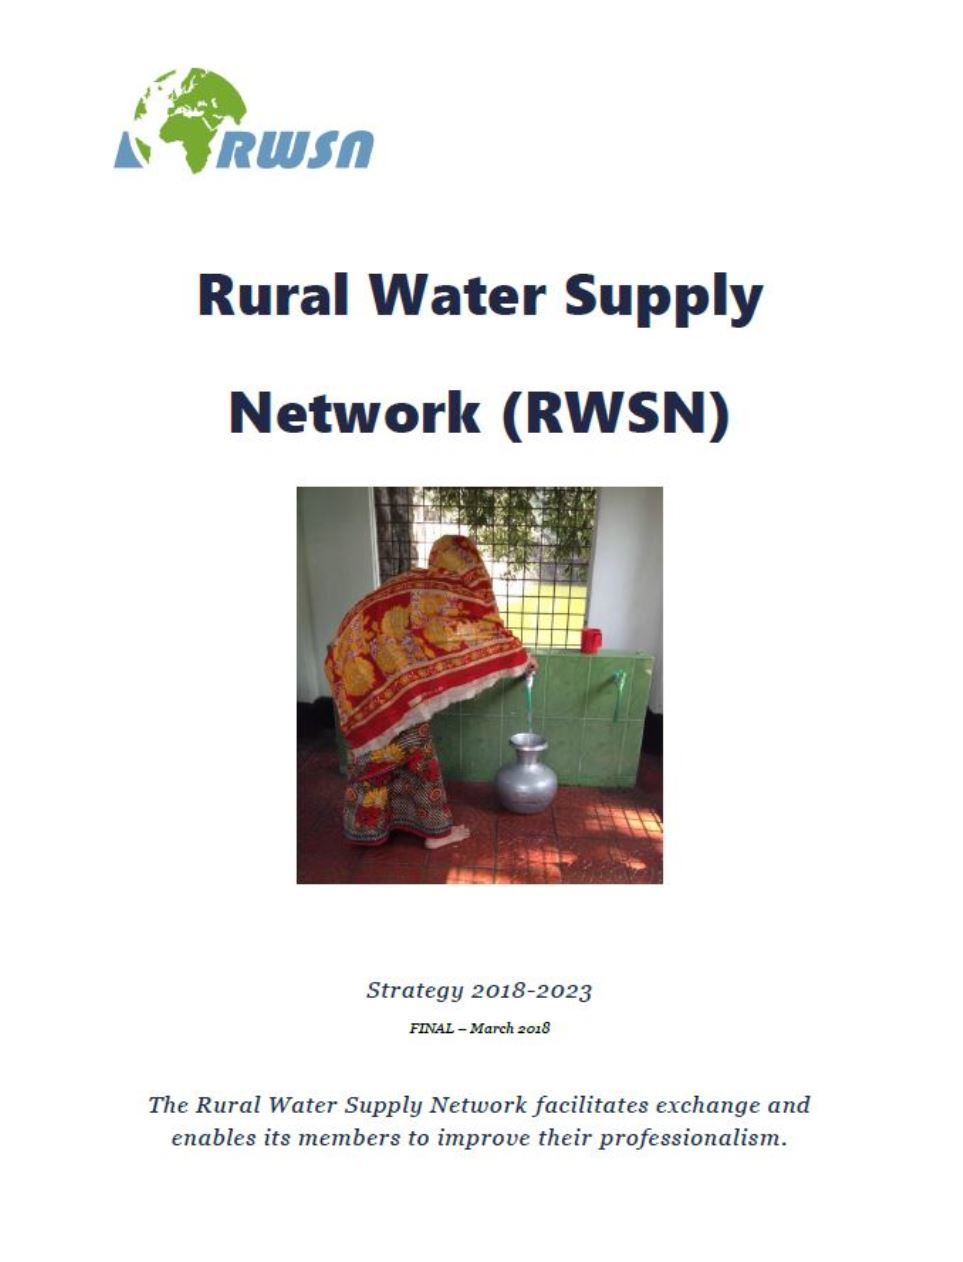 World Water Day 2018: Publication of the new RWSN Strategy 2018-2023